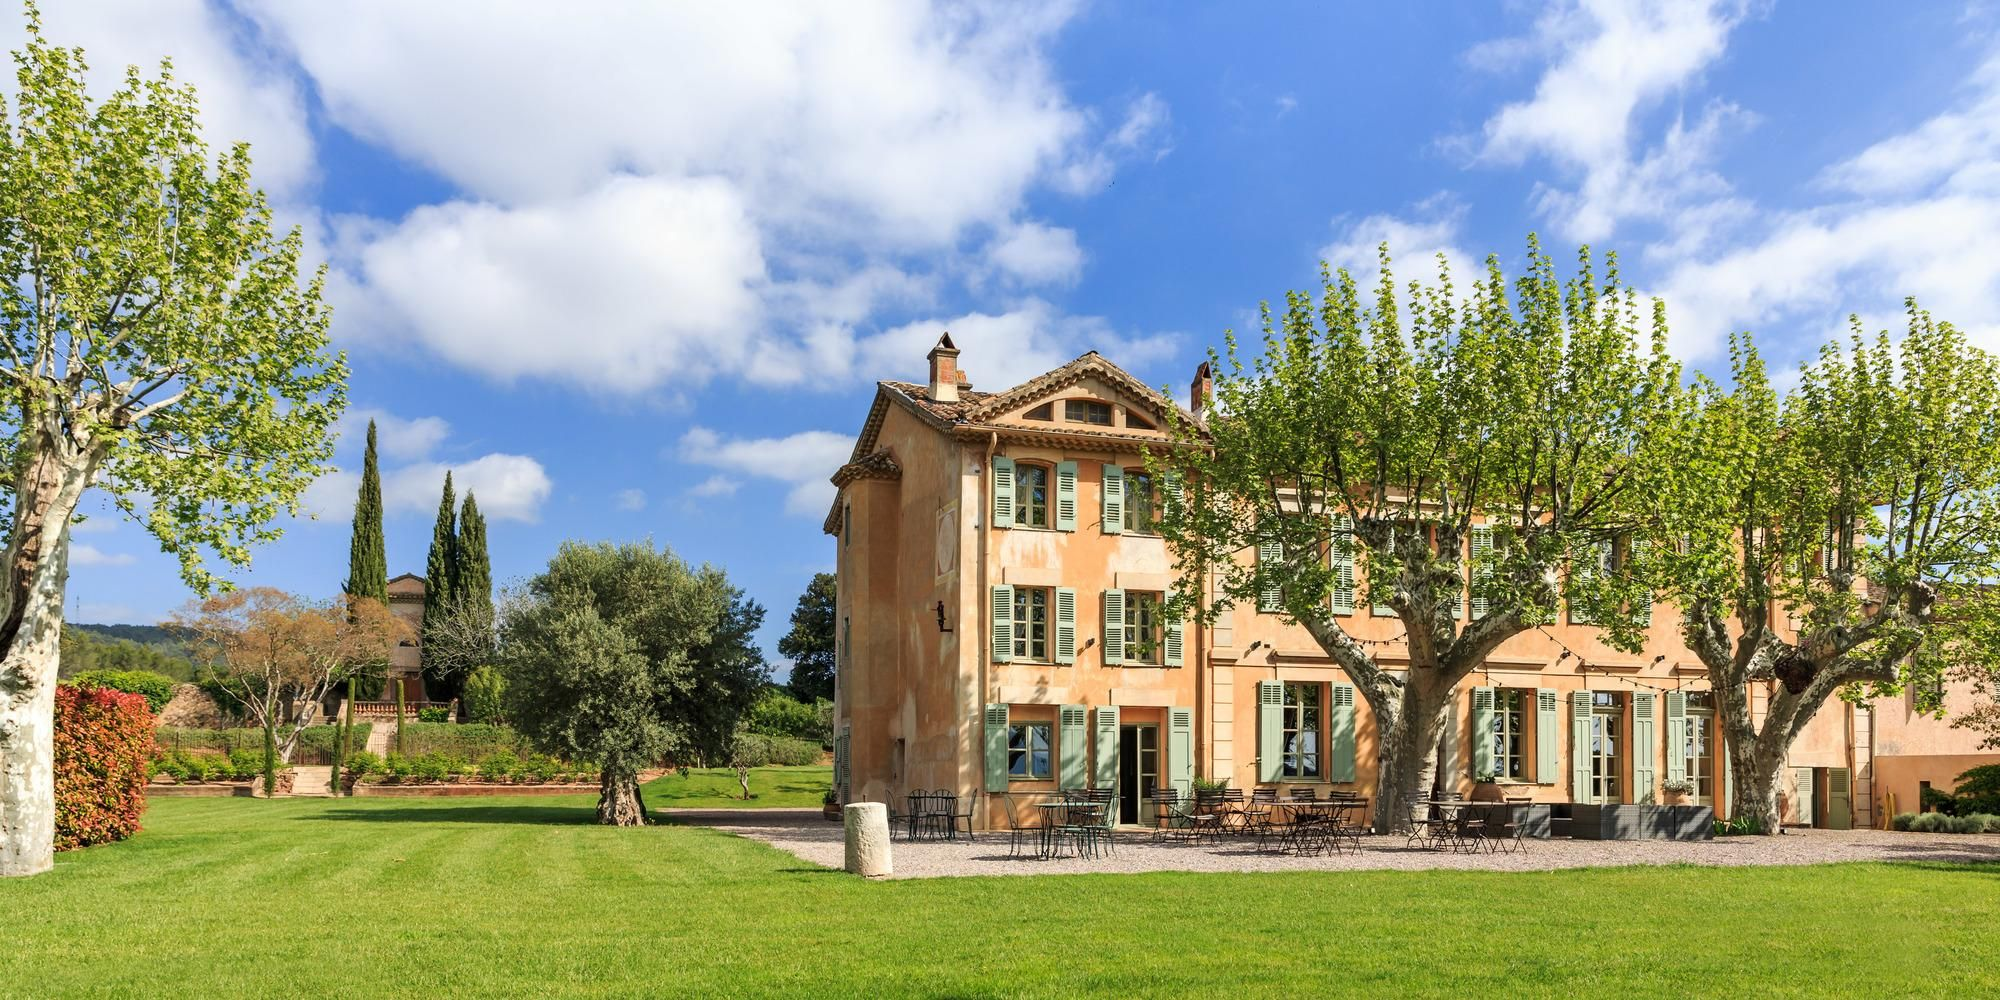 Manoir D Argens La Motte Var Villas Private Pool Qv Vacation France Going On Holiday Private Pool